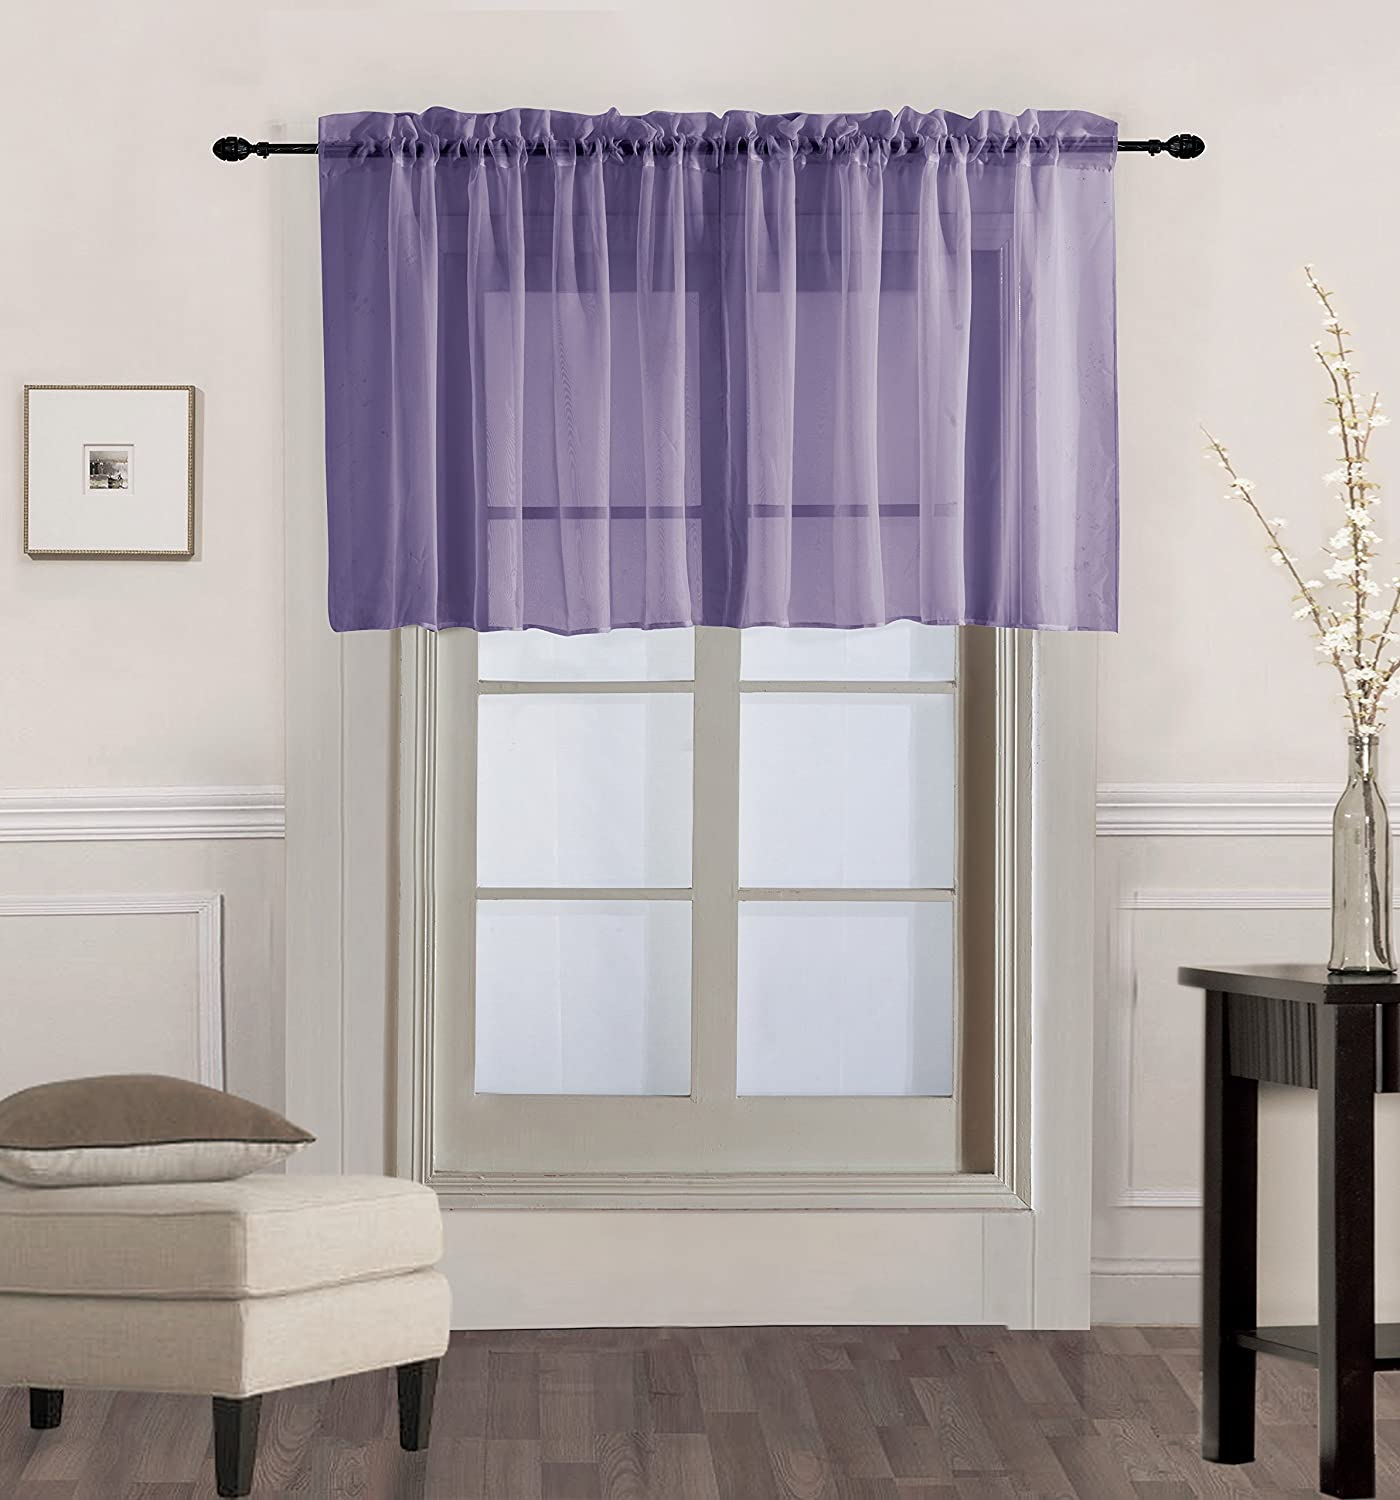 "GorgeousHome (V16) 1PC Solid Lilac Lavender Voile Sheer Versatile Multi Use Luxury Rod Pocket Window Straight Valance Topper Waterfall Swag Treatment 55"" X 18"""